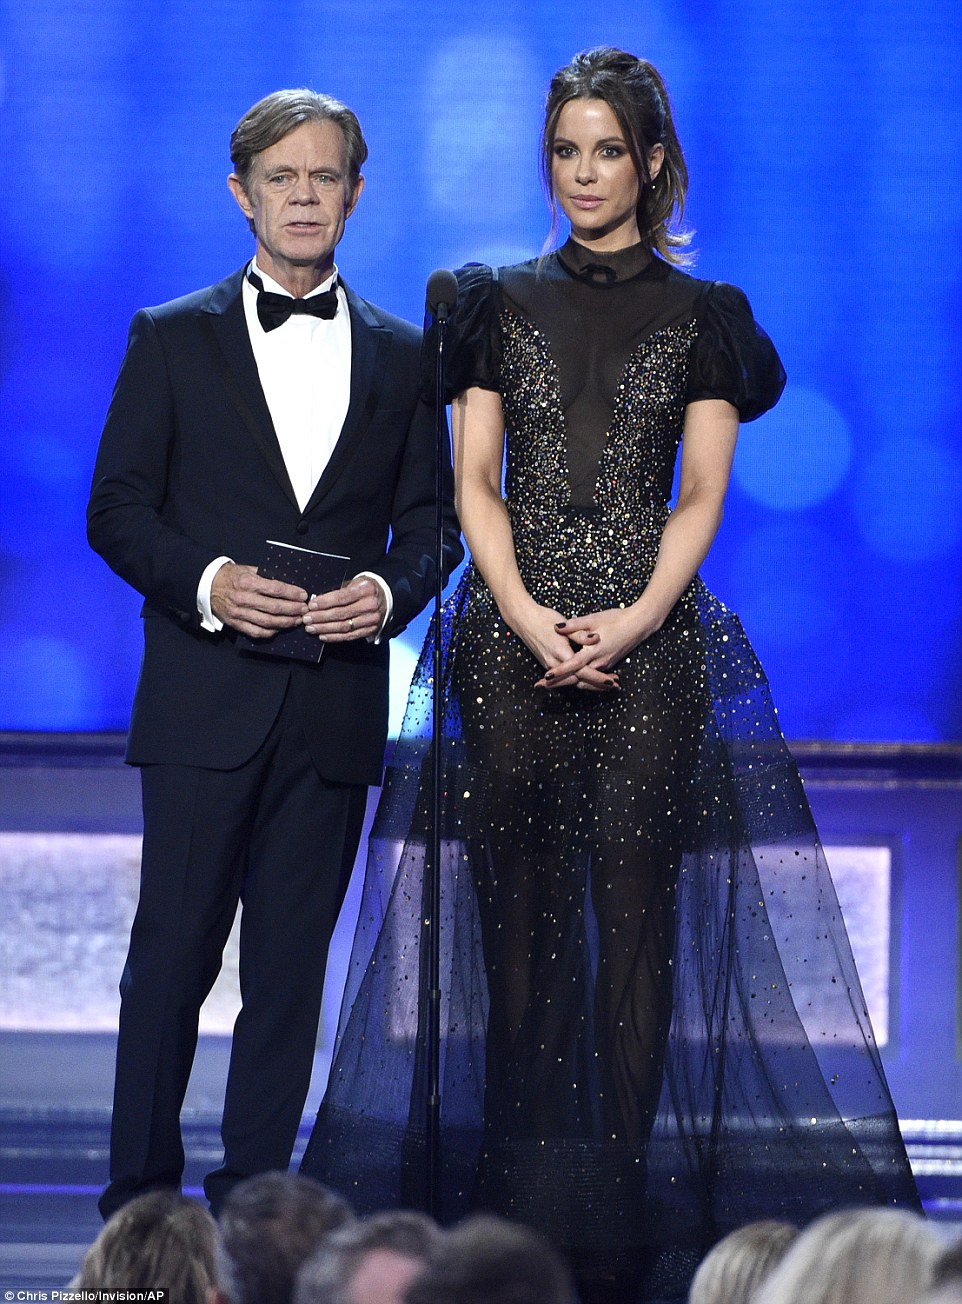 Stunning: The award was presented by William H. Macy and Kate Beckinsale